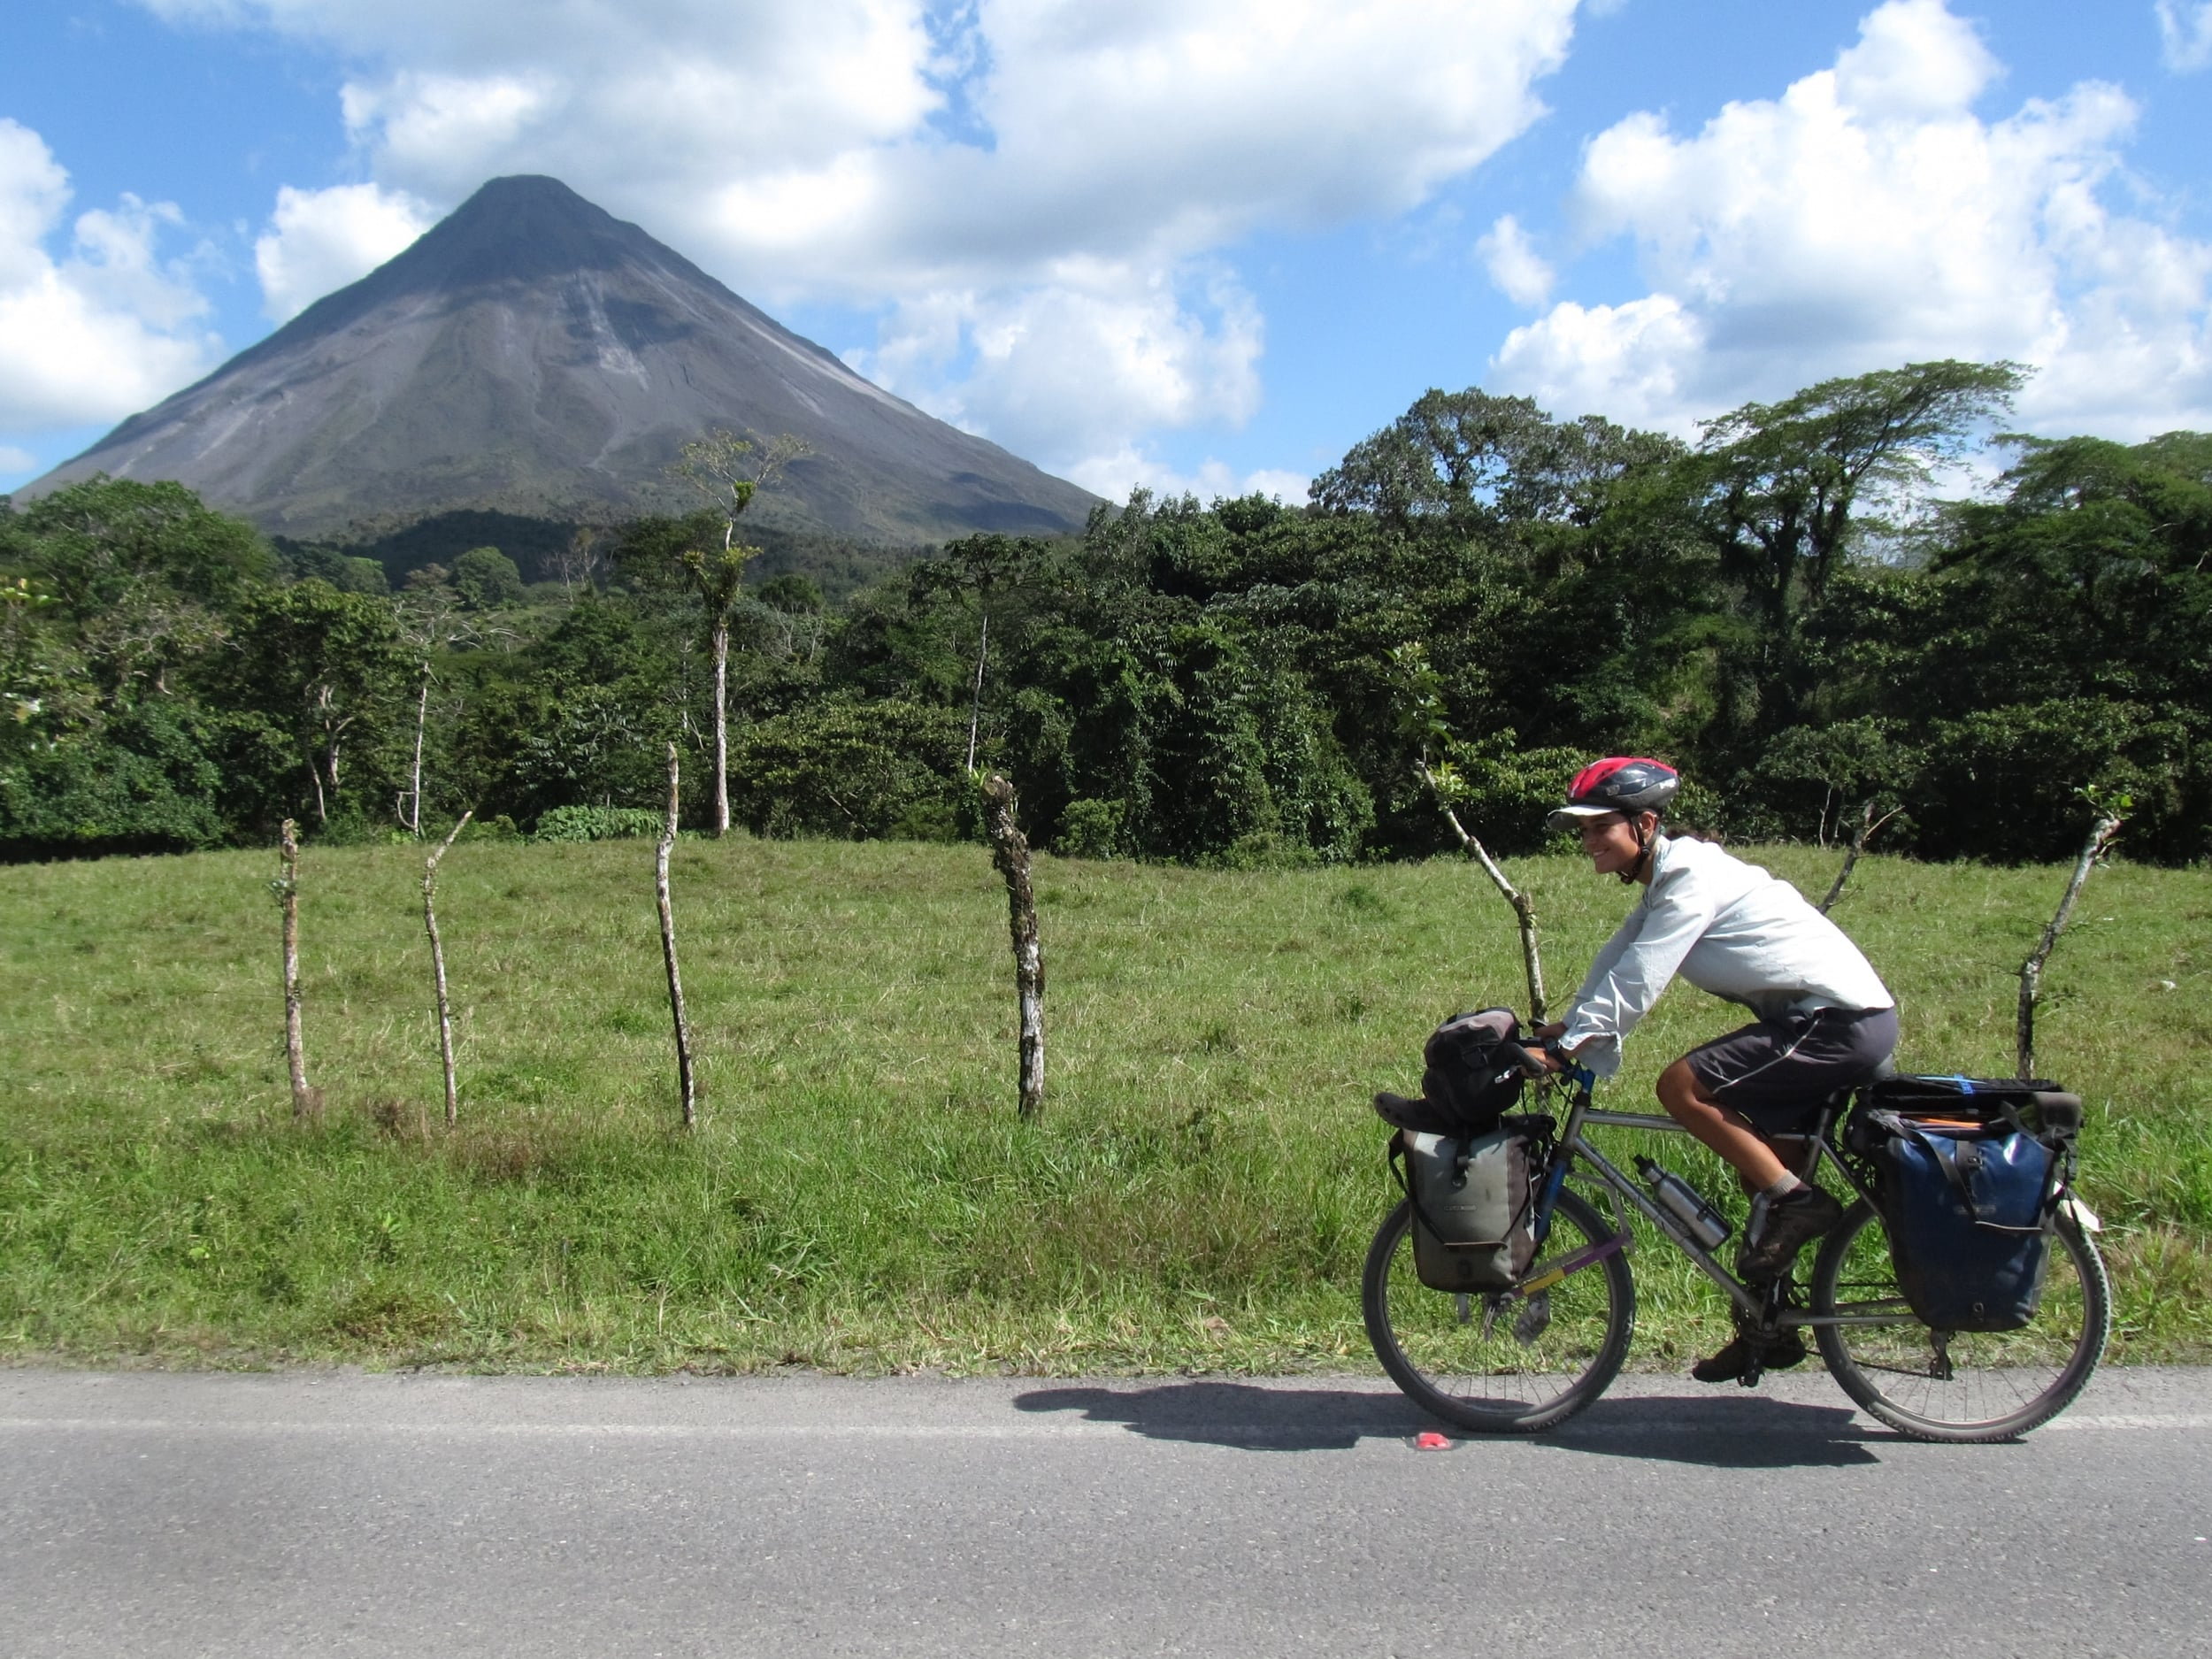 We pedaled towards and then around the impressive volcano Arenal.